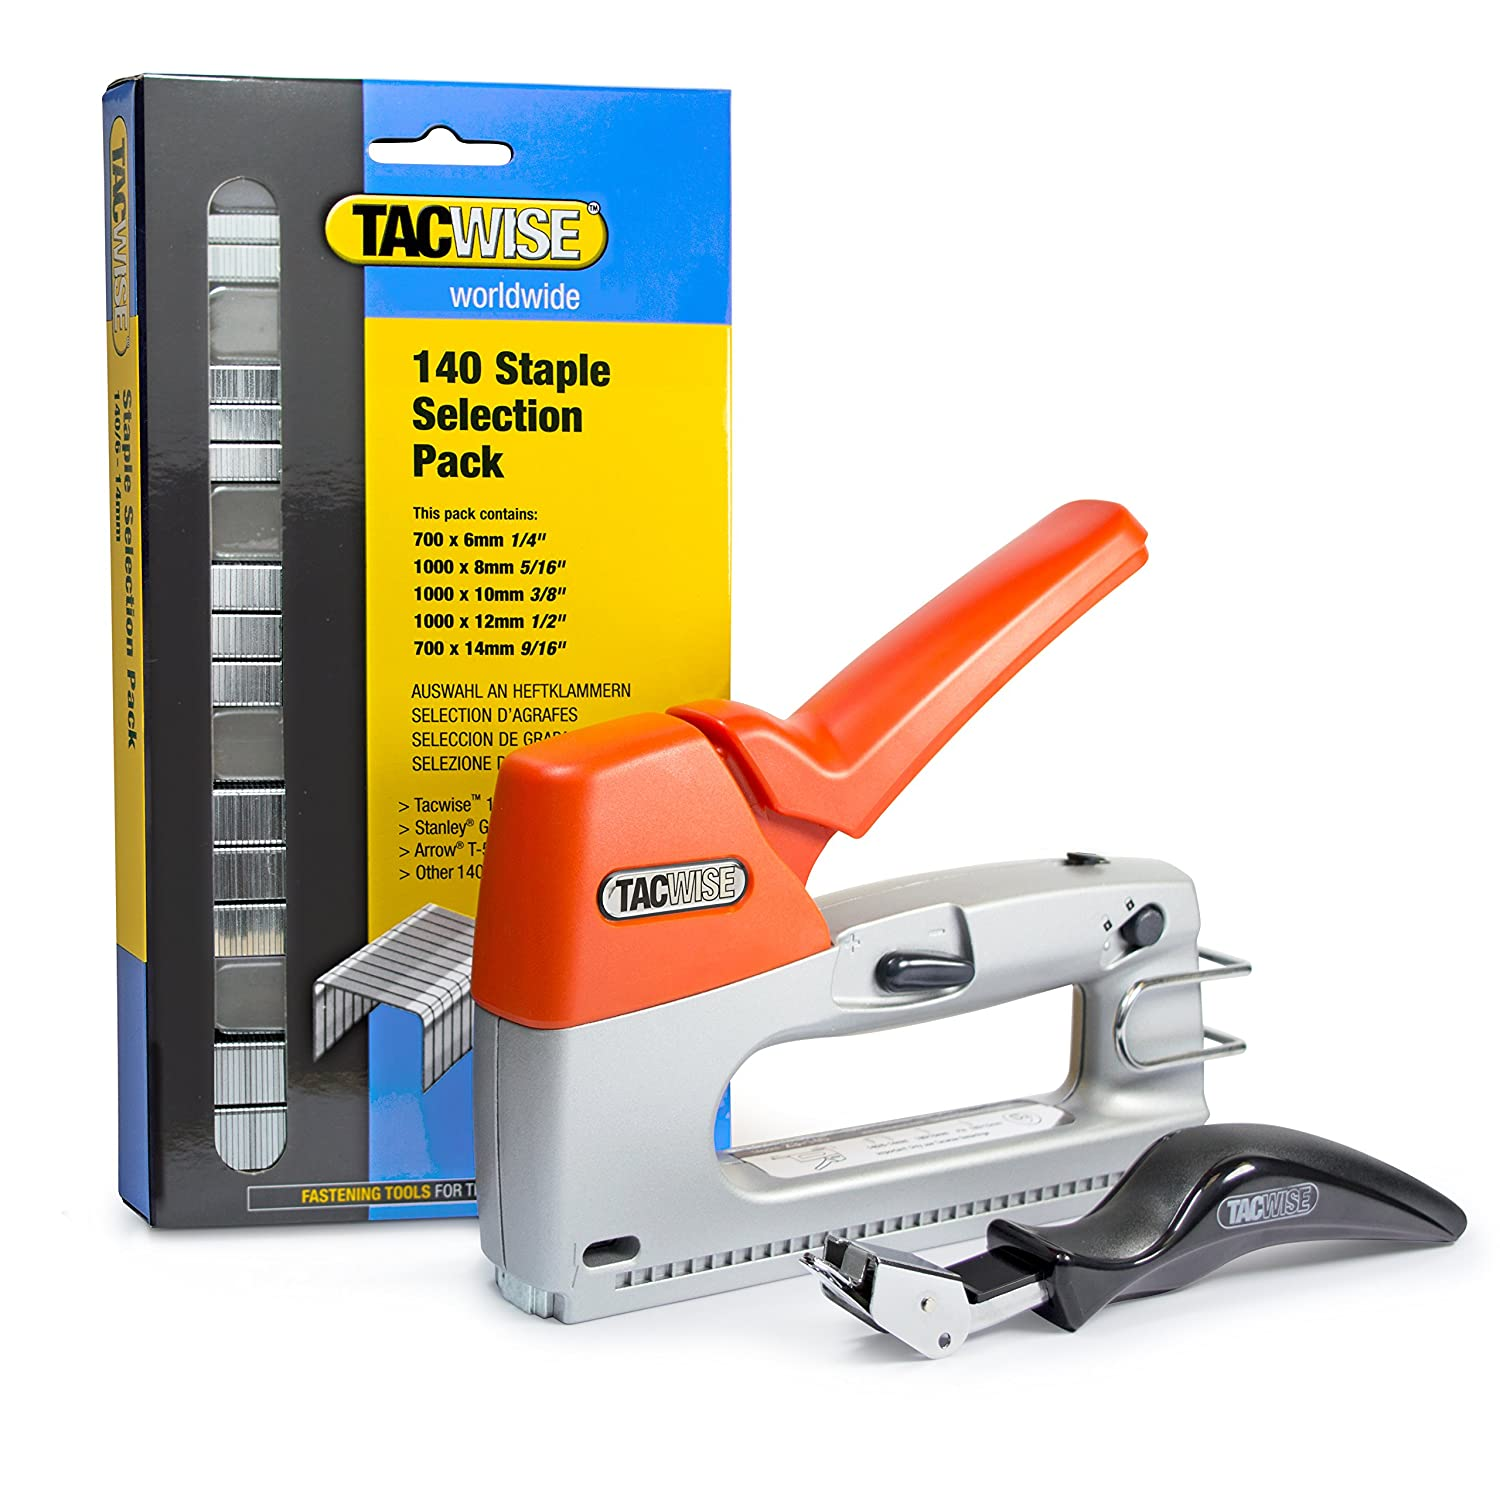 Tacwise Z3-140 Heavy Duty Hand Tacker/Staple Gun for 1/4, 5/16, 3/8, 1/2 and 9/16 Inches Long Staples, Silver/Orange (0806)